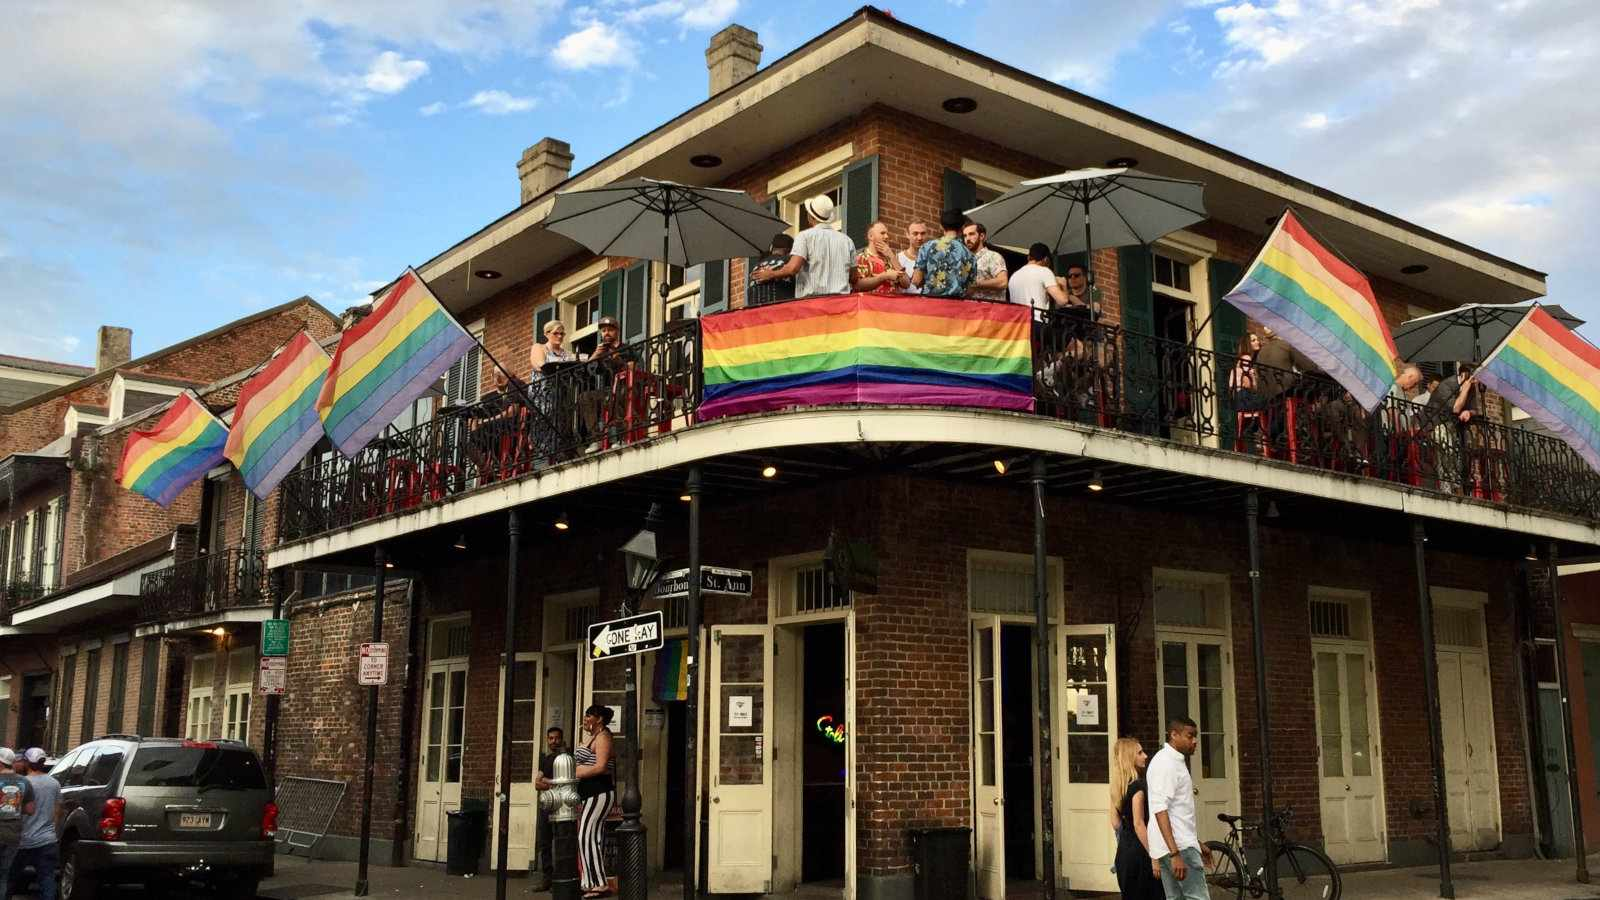 It's no surprise that as the home of Mardi Gras, New Orleans is one of the gayest cities in America